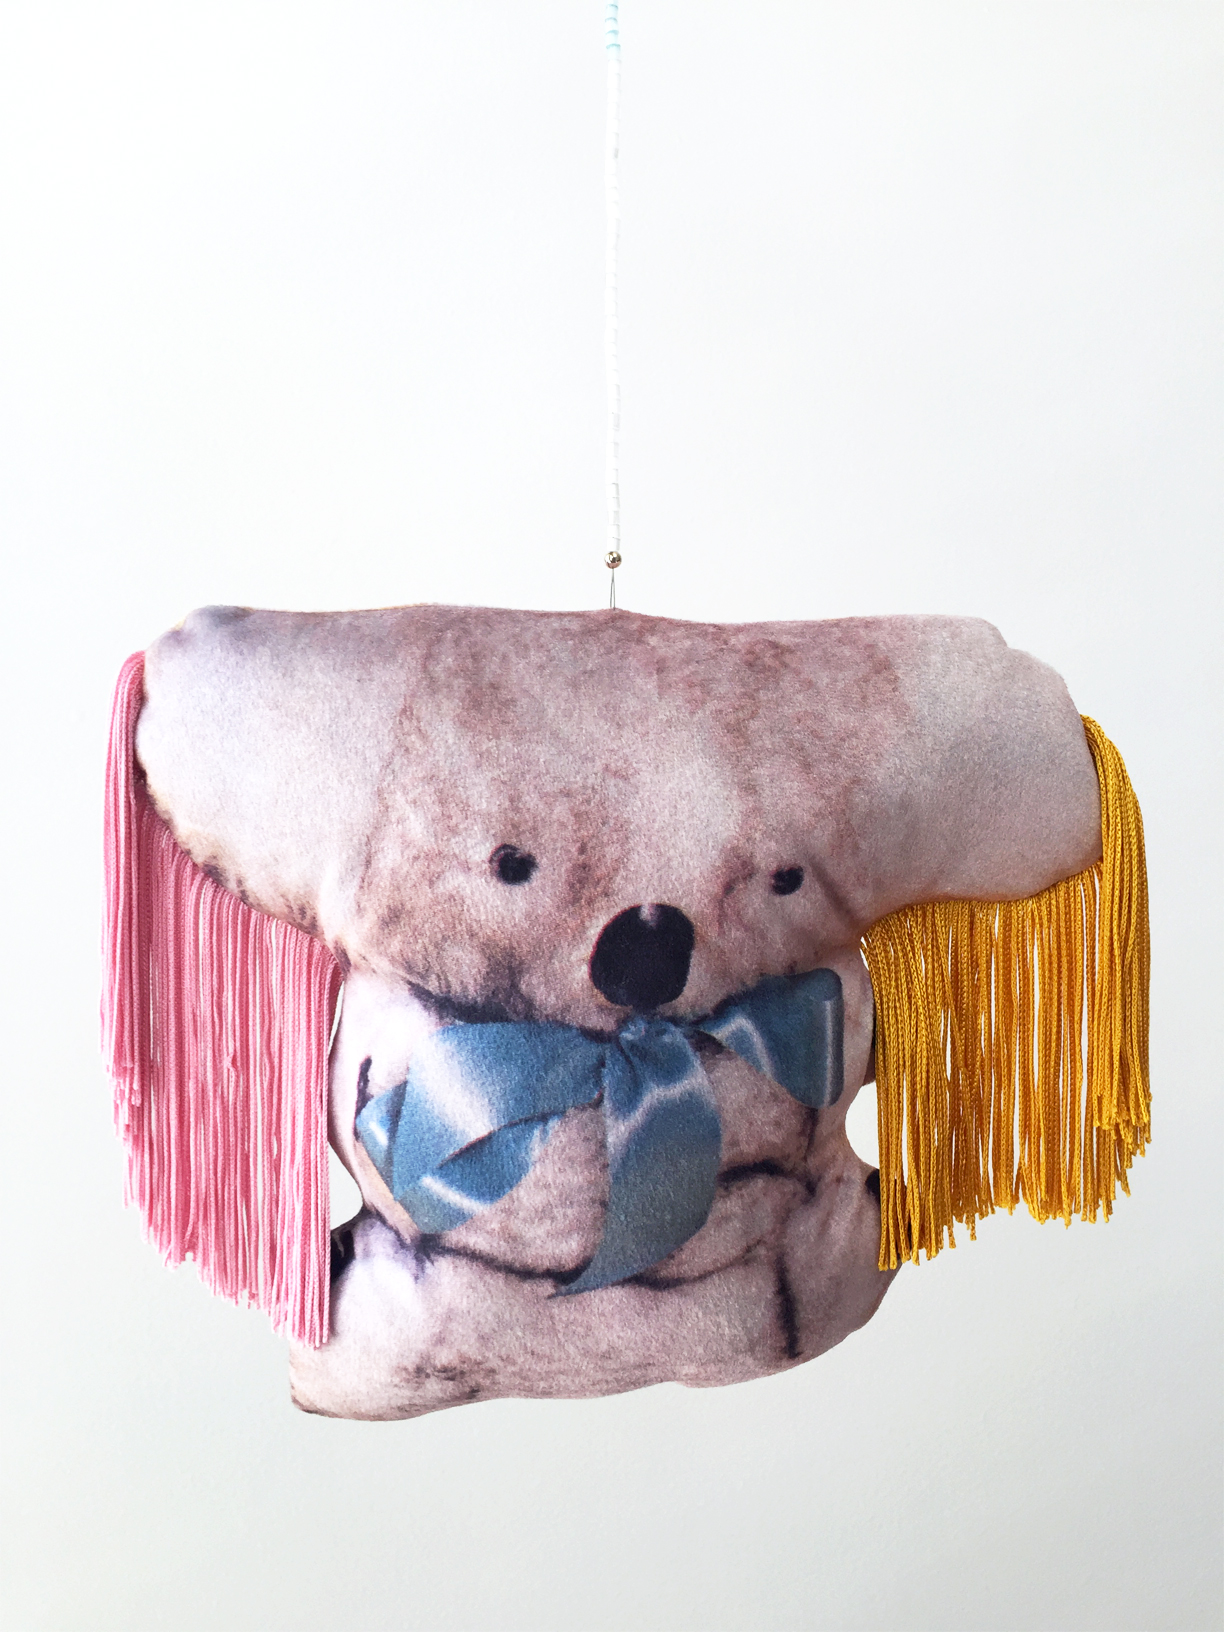 (How To) Make a Koala, 2019, digitally printed velvet, found image, polyester, wool, glass beads